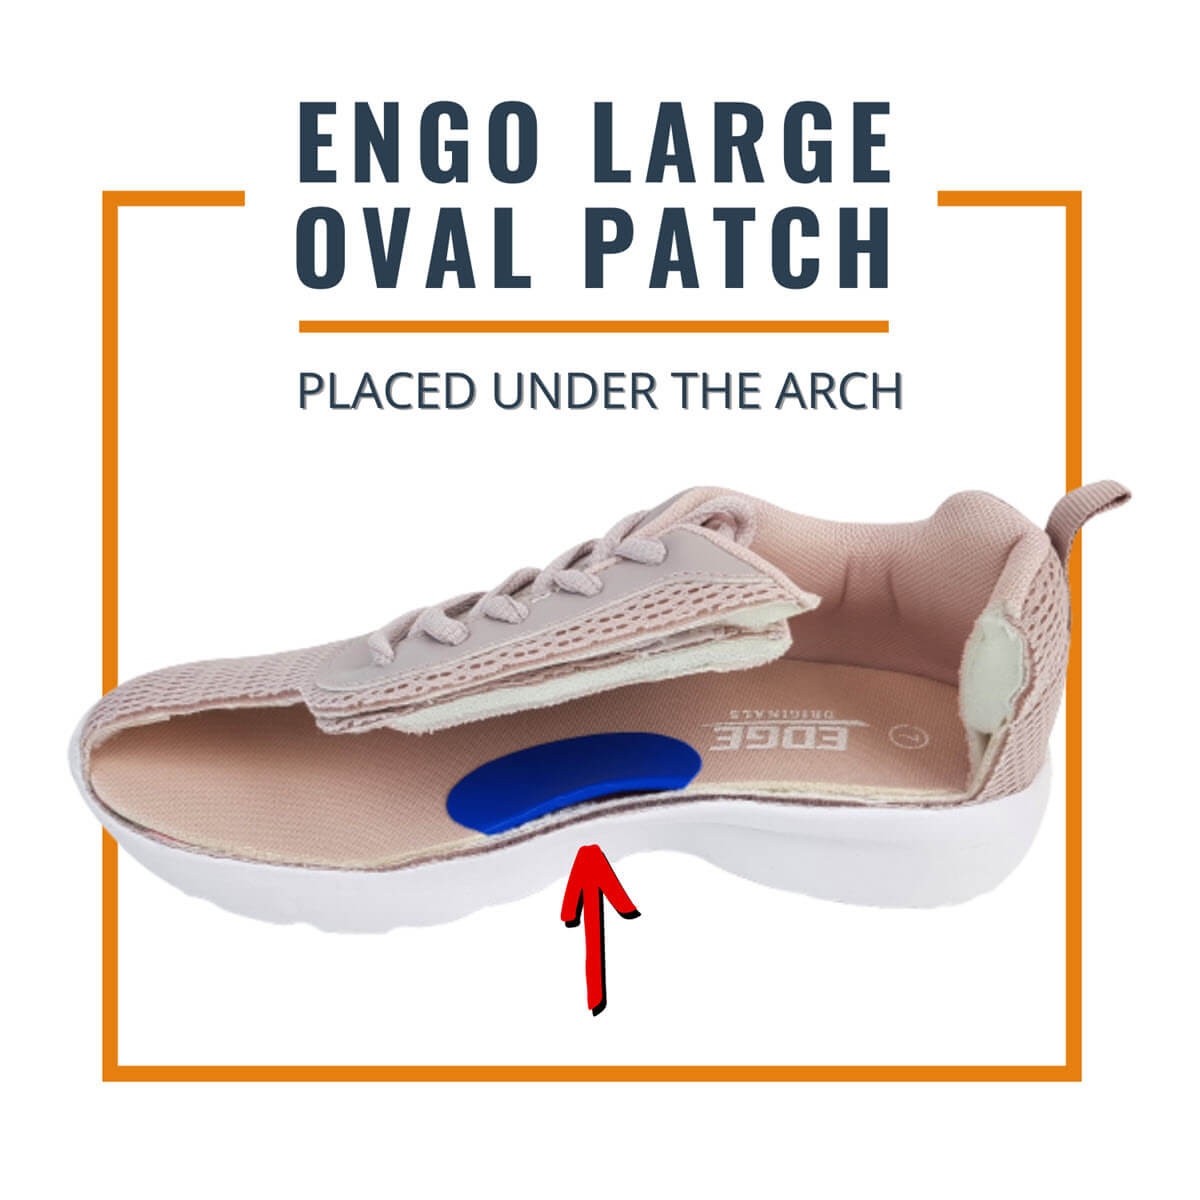 ENGO Blister Patches 4-Pack 6-Pack 30-Pack Large Oval Patch applied under the arch